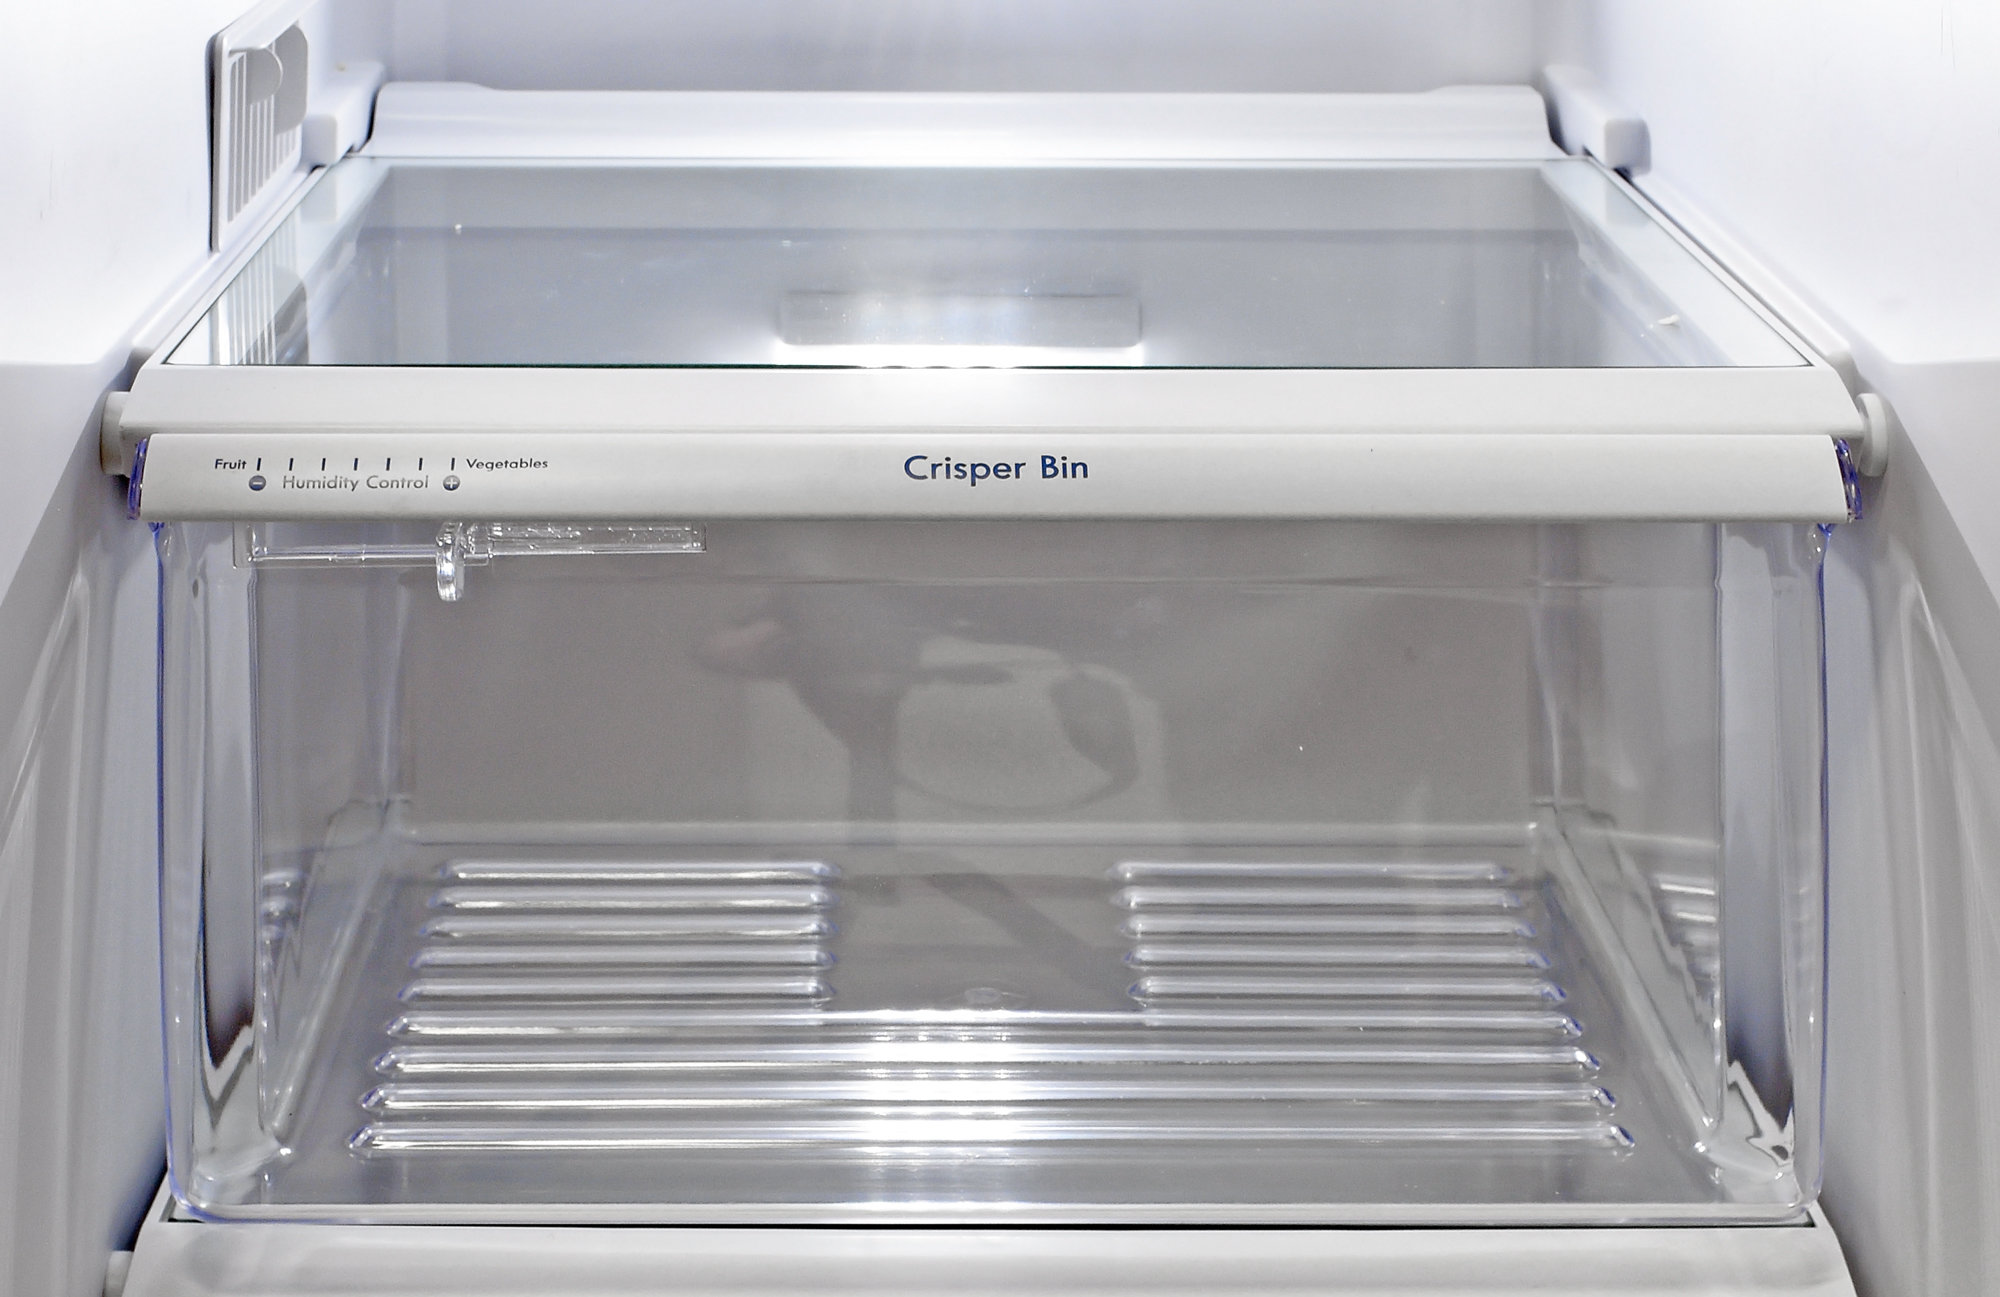 The Kenmore 51122 only has one crisper drawer, and it's not very good.